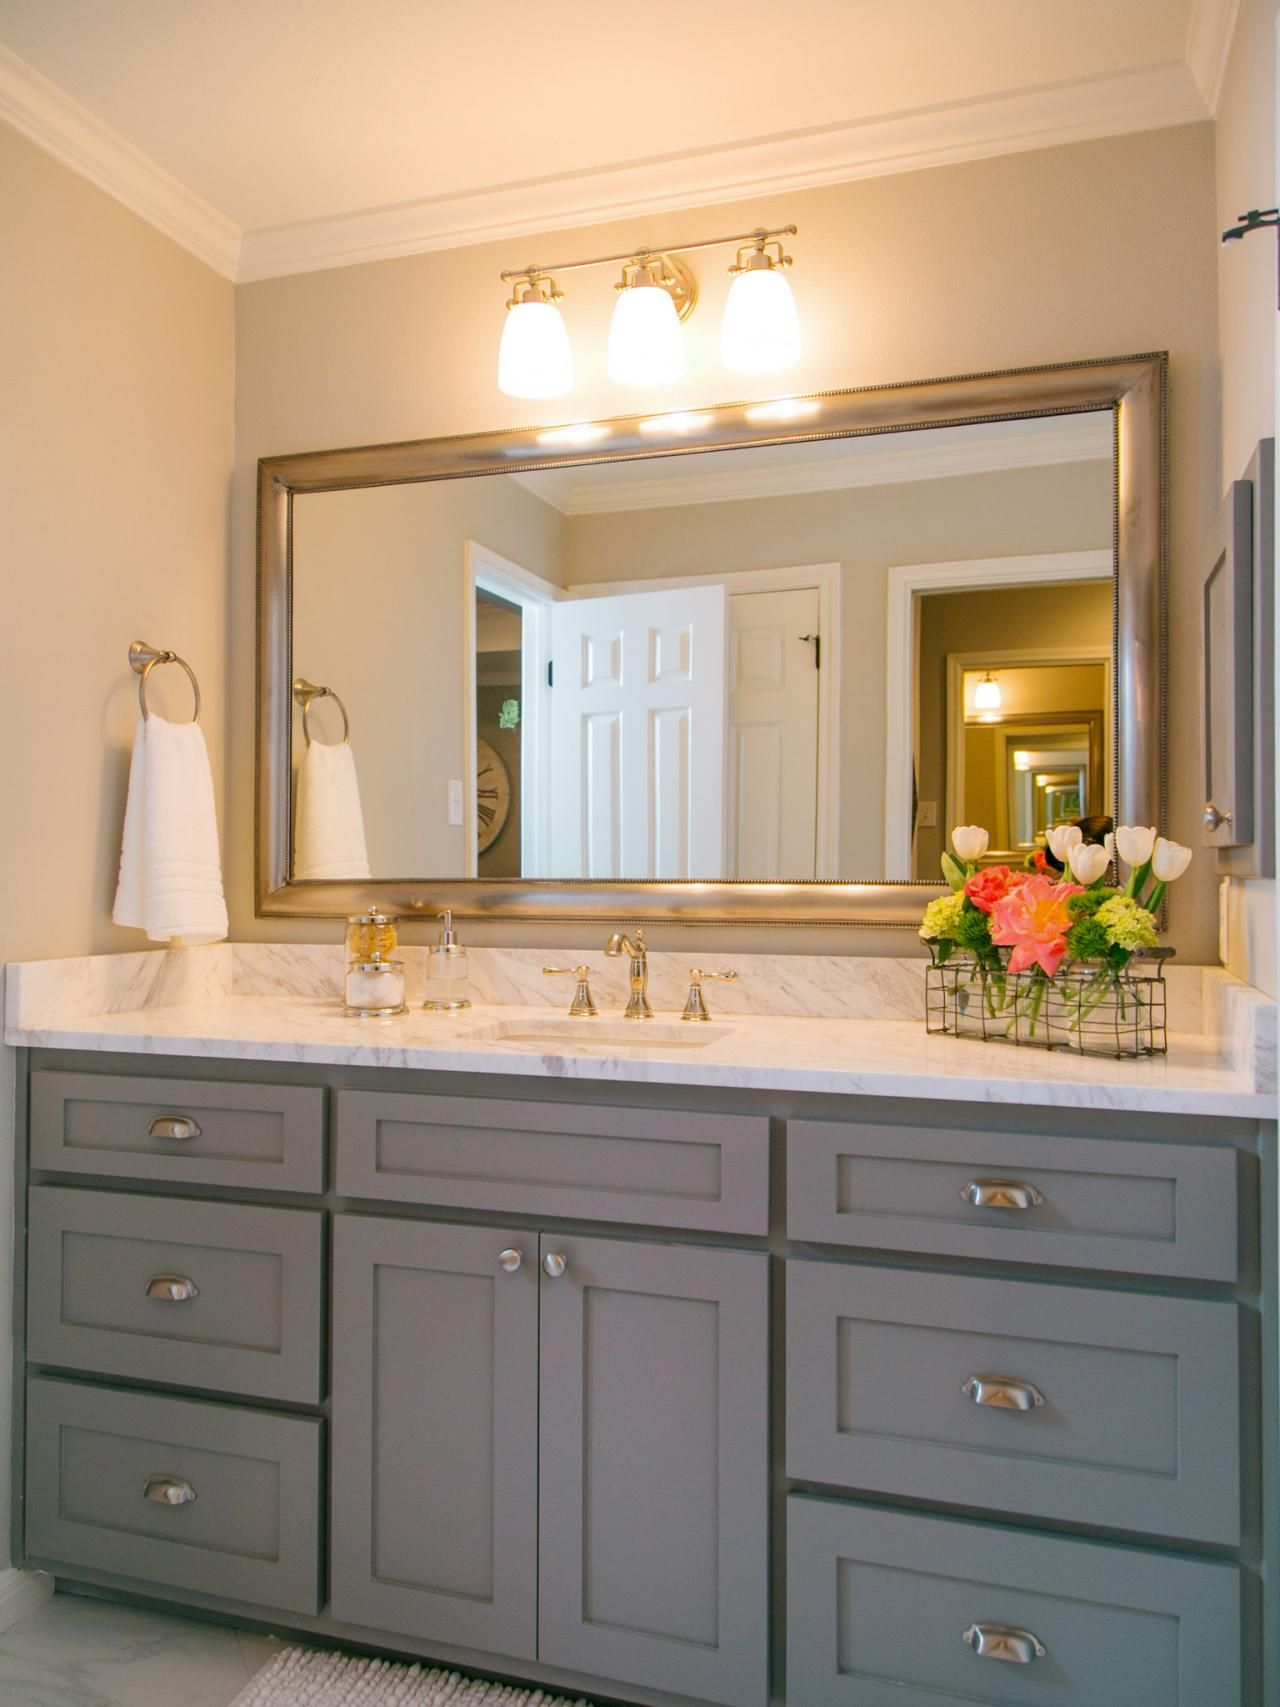 Fixer upper cabinet pulls - Find The Best Of Hgtv S Fixer Upper With Chip And Joanna Gaines From Hgtv